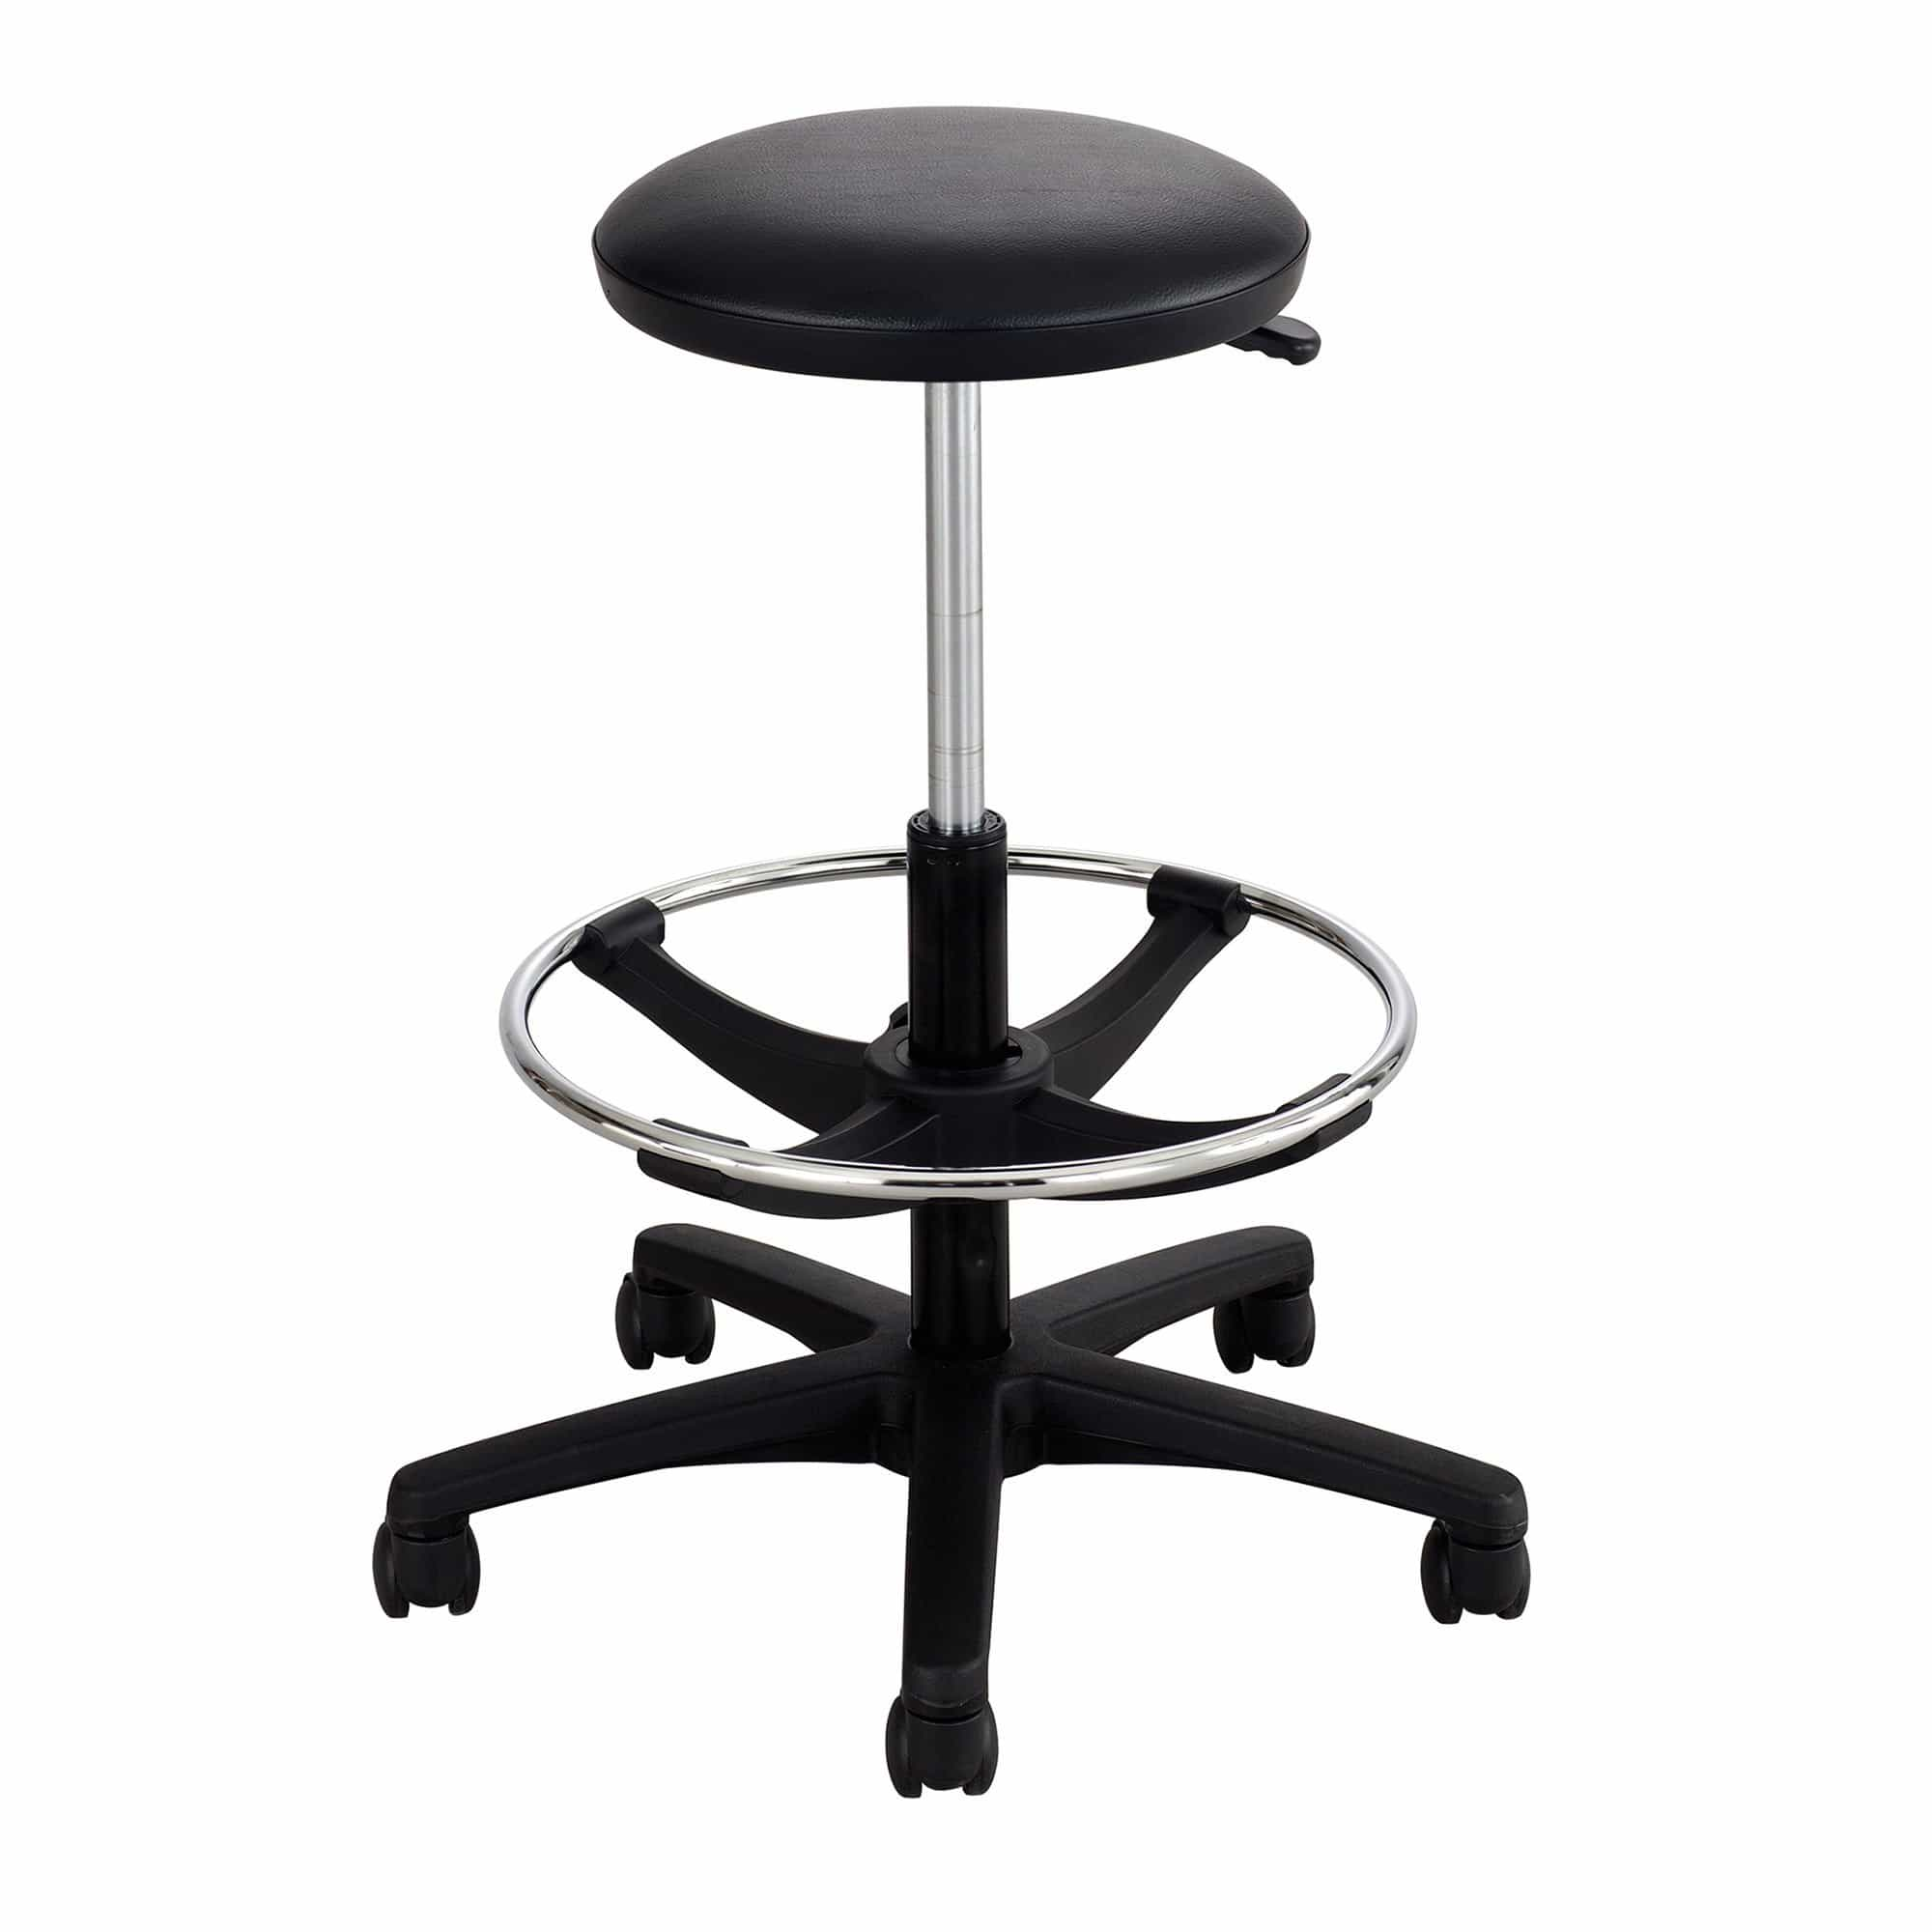 bedinhome - 3436BL 250 Lbs Capacity Black Five-Star Hooded Dual Caster Base Swivel Extended-Height Lab Stool With Upholstered Vinyl Seat - Safco - Extended-Height Lab Stool